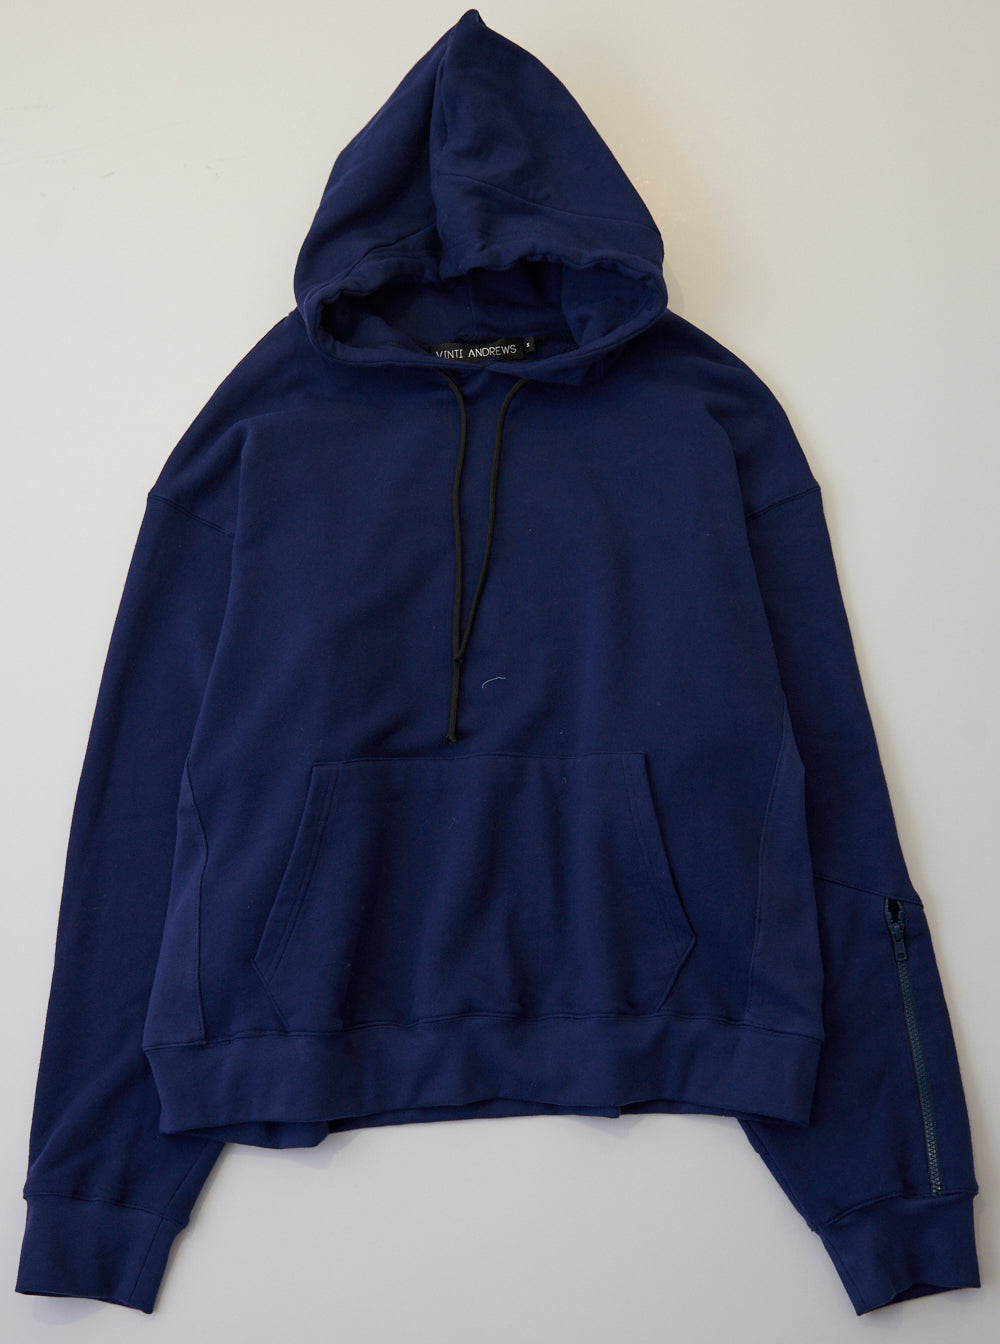 Vinti Andrews Zip Hood Hoody Navy